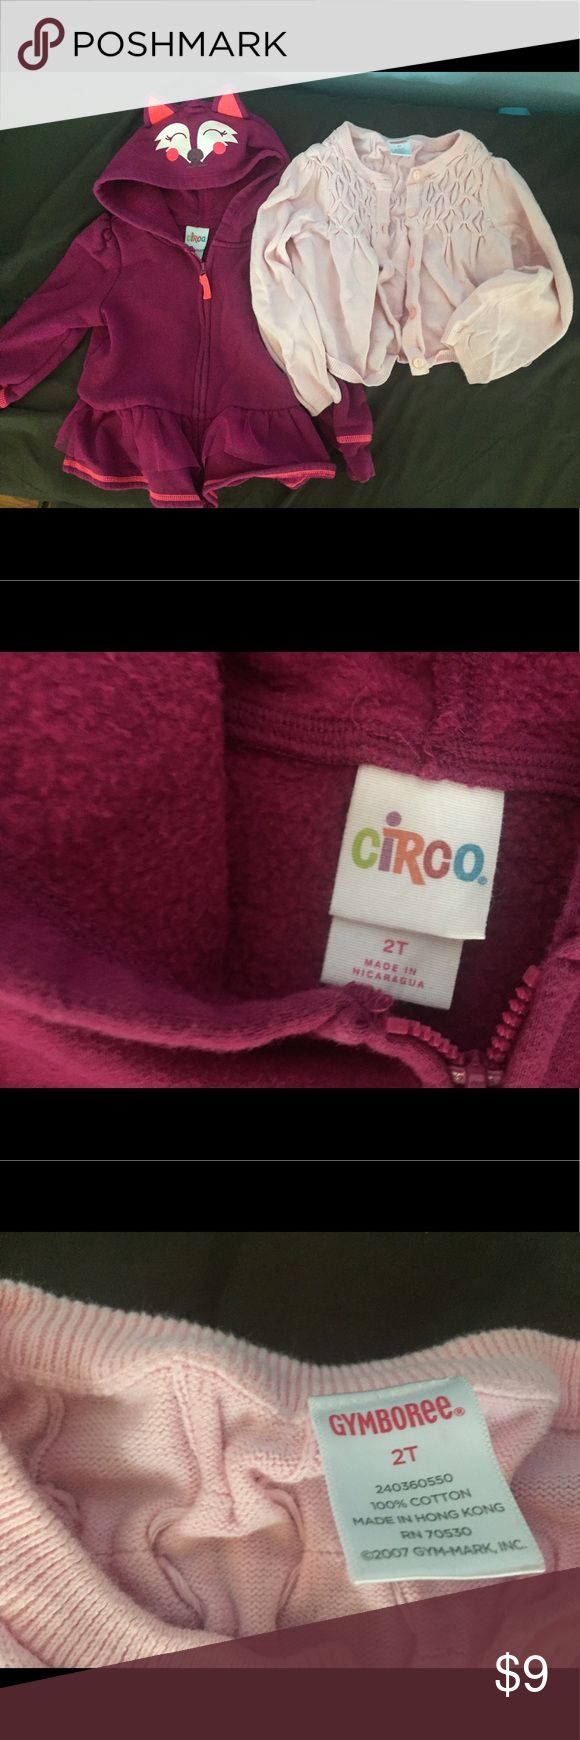 Gymboree cardigan and circo fox jacket Great condition Gymboree Jackets & Coats